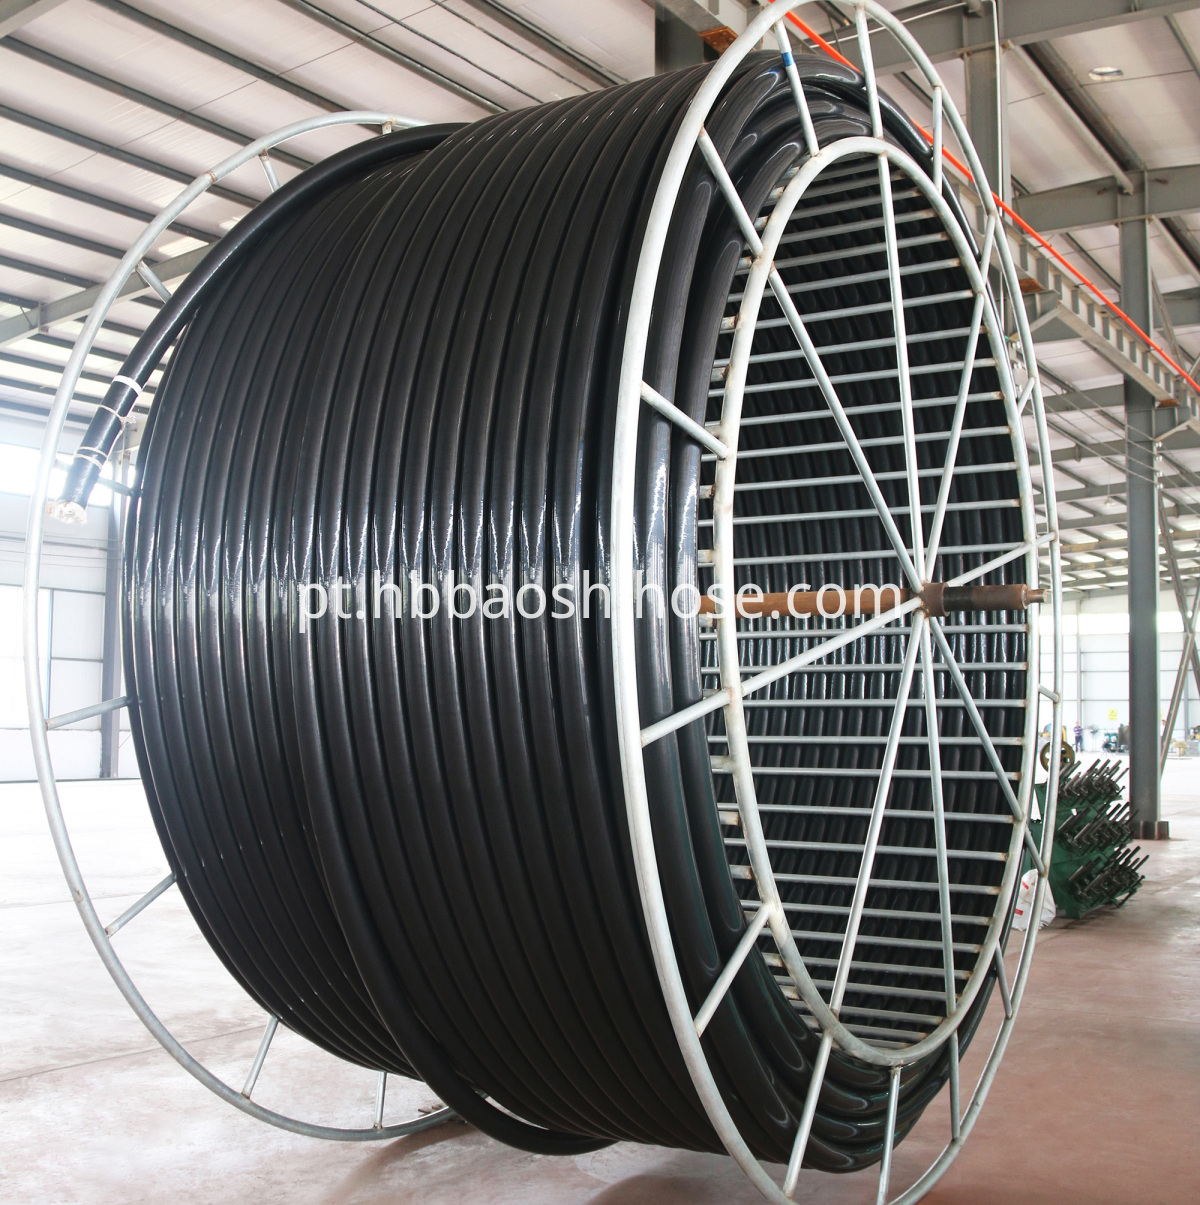 Flexible High Pressure Gas Tube